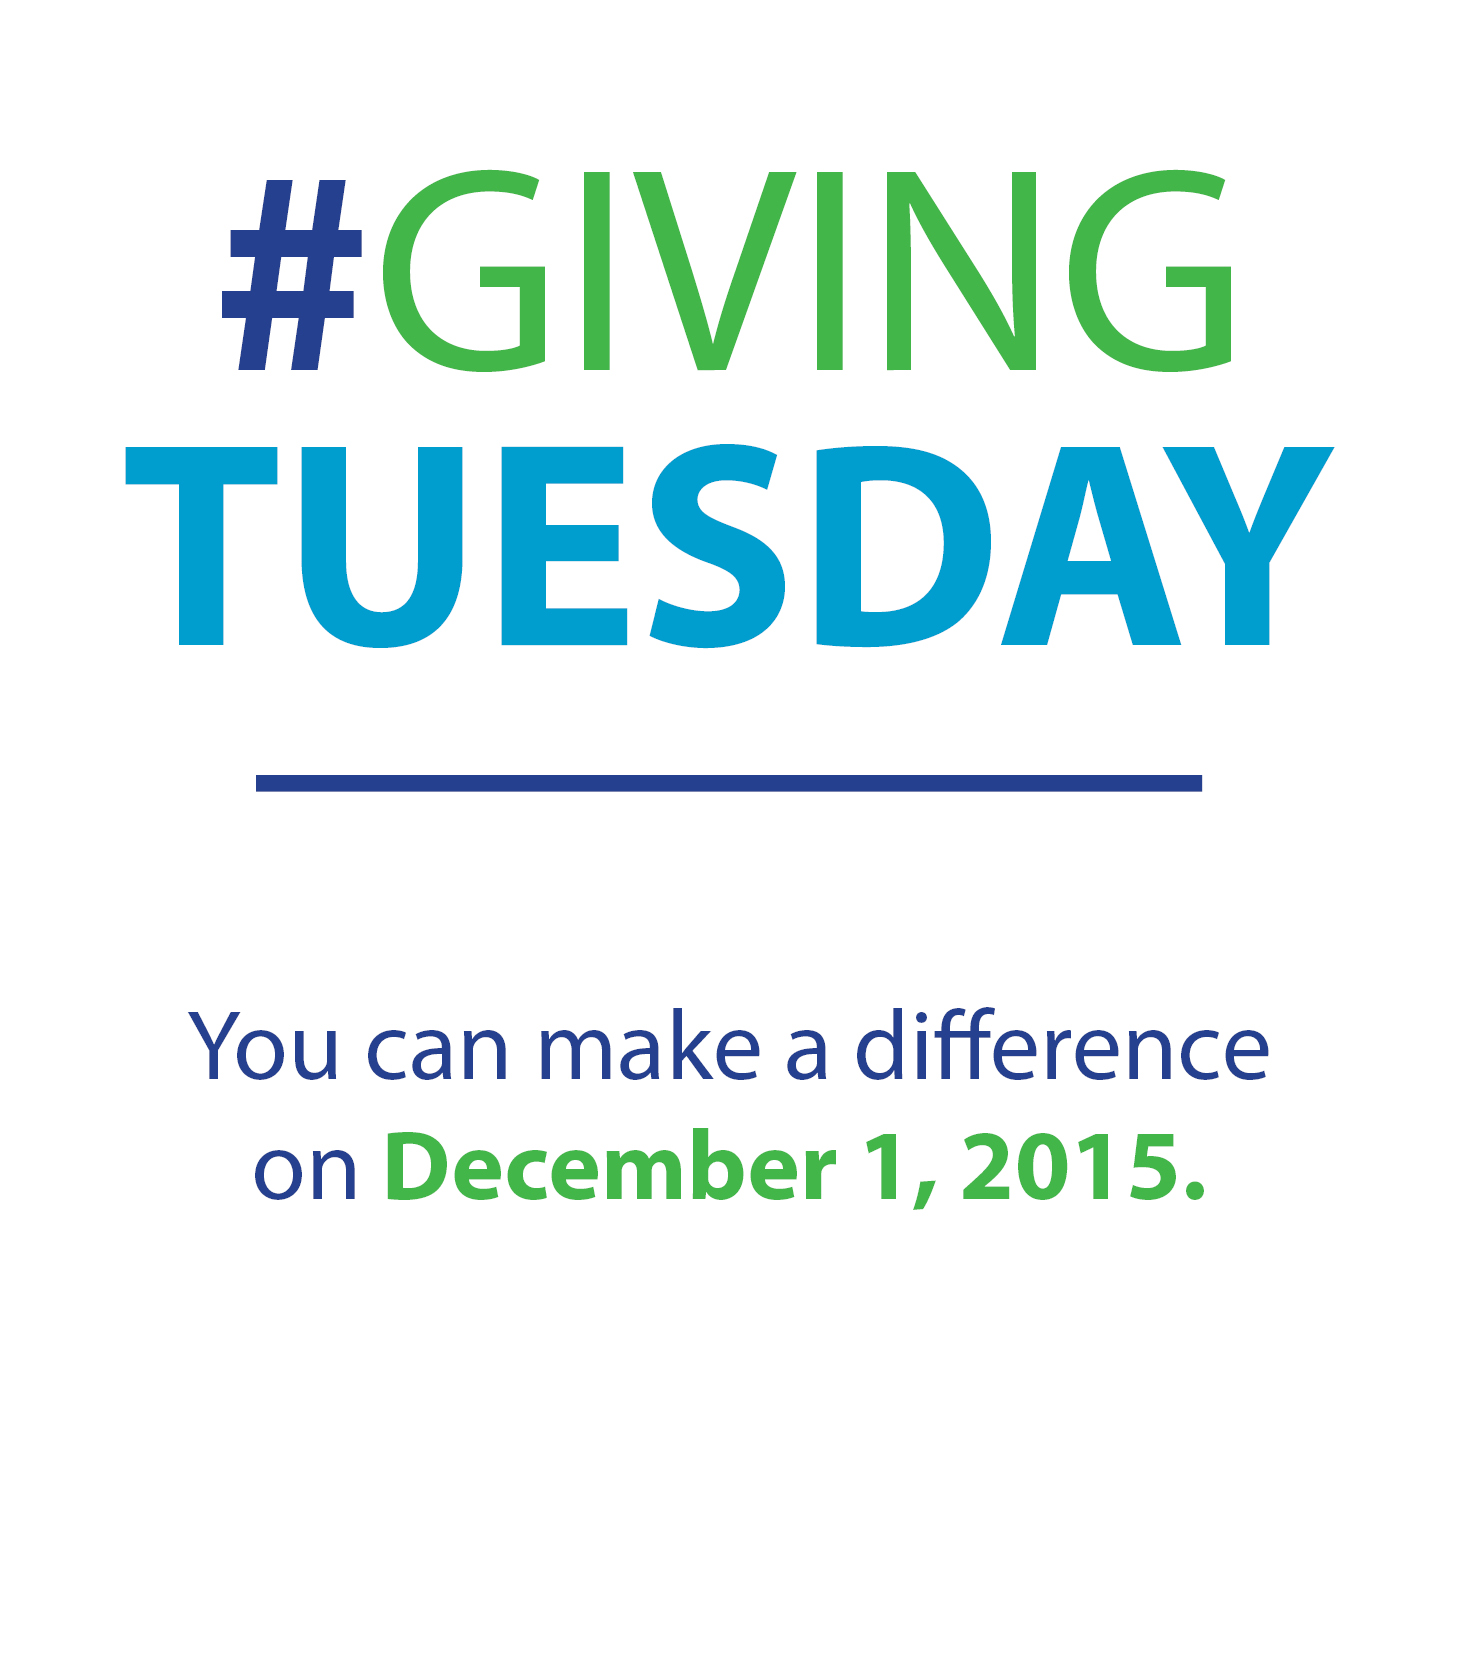 #GivingTuesday You can make a difference on December 2, 2014